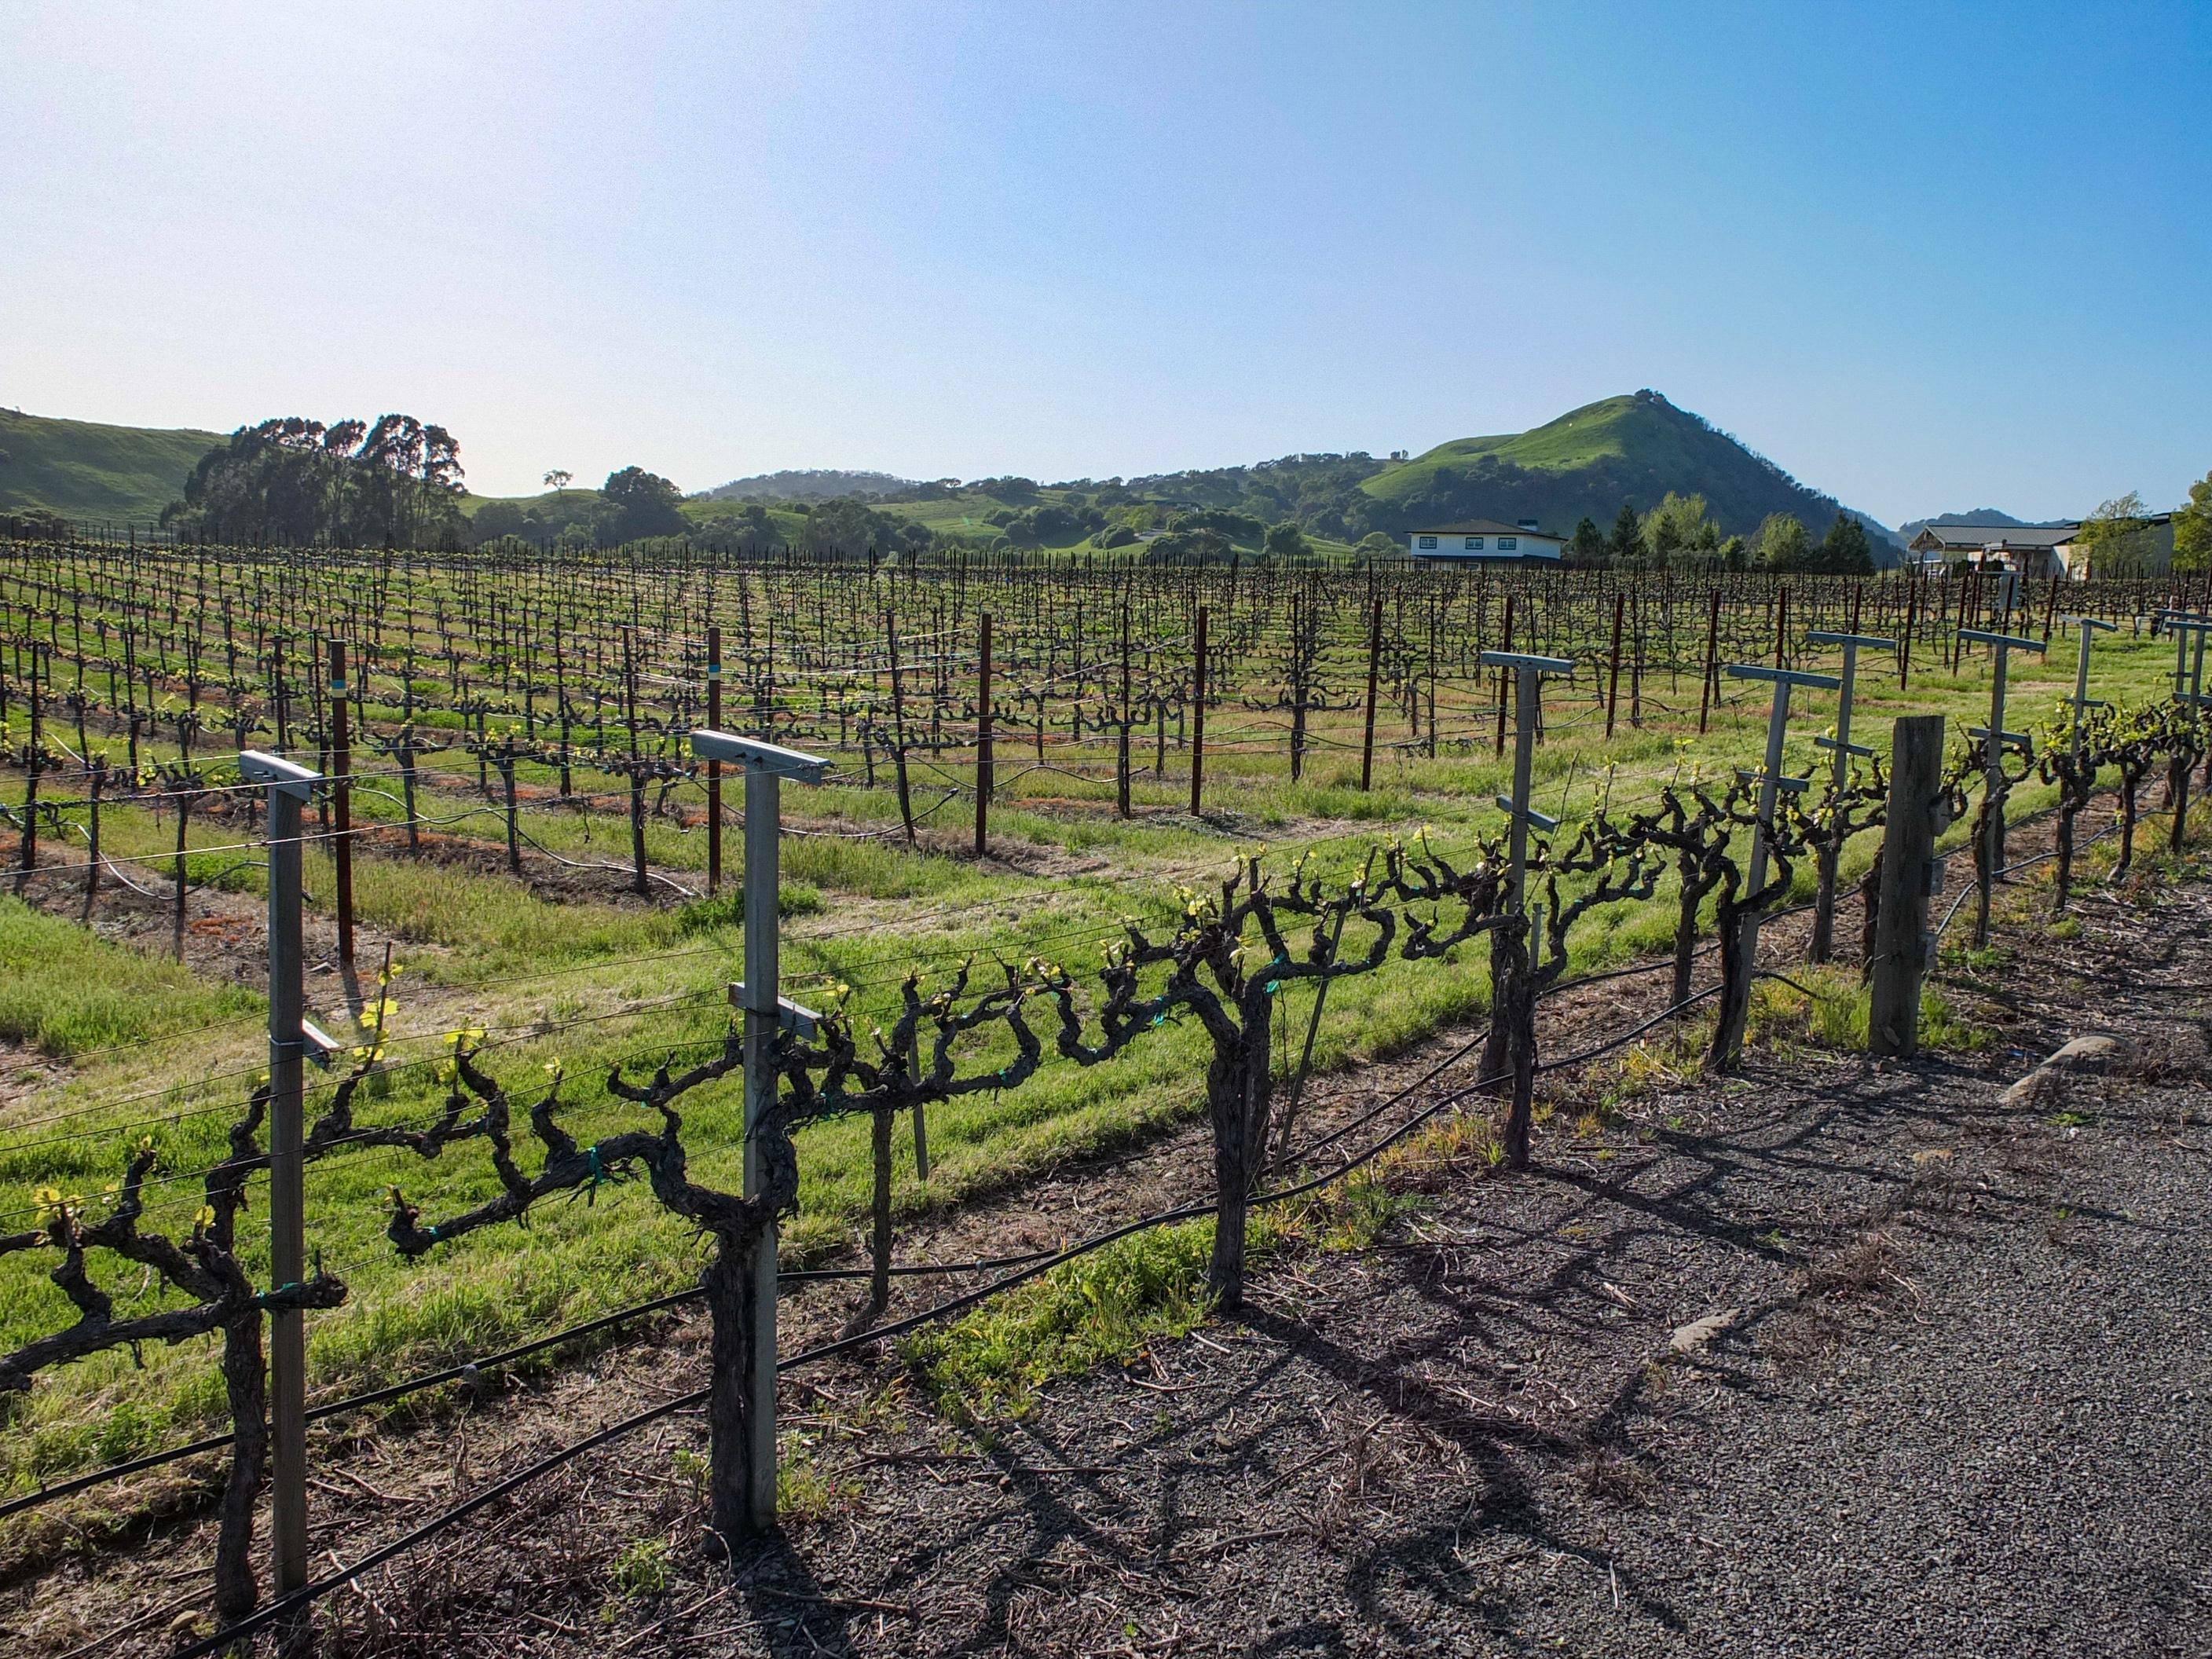 Napa Valley vineyard on the side of a road. Photo taken by Fred Hsu on April 8, 2018.